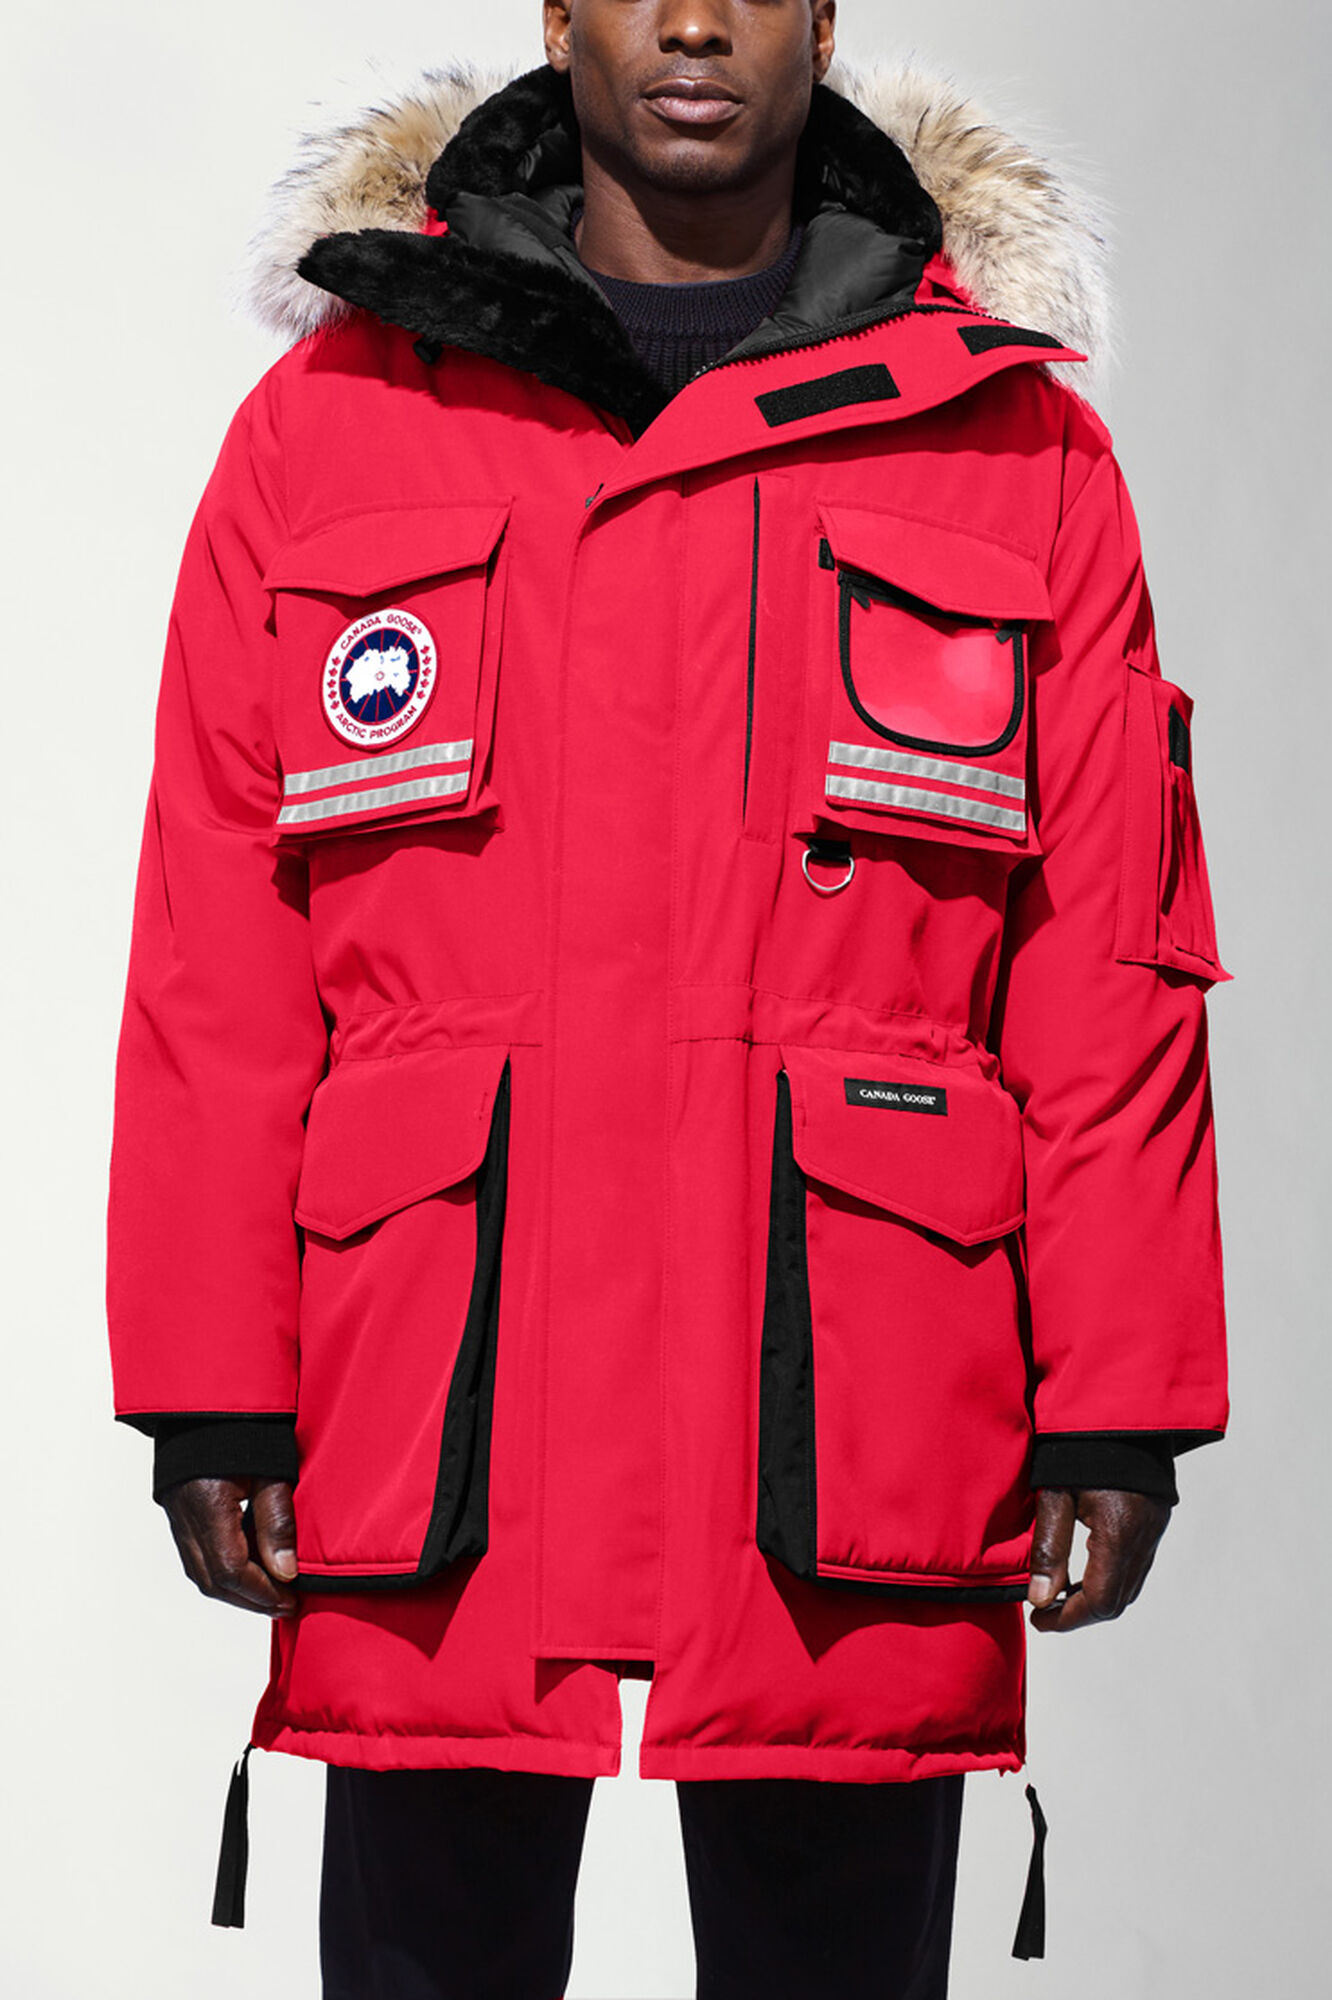 Canada Goose womens outlet shop - Men's Arctic Program Snow Mantra Parka | Canada Goose?